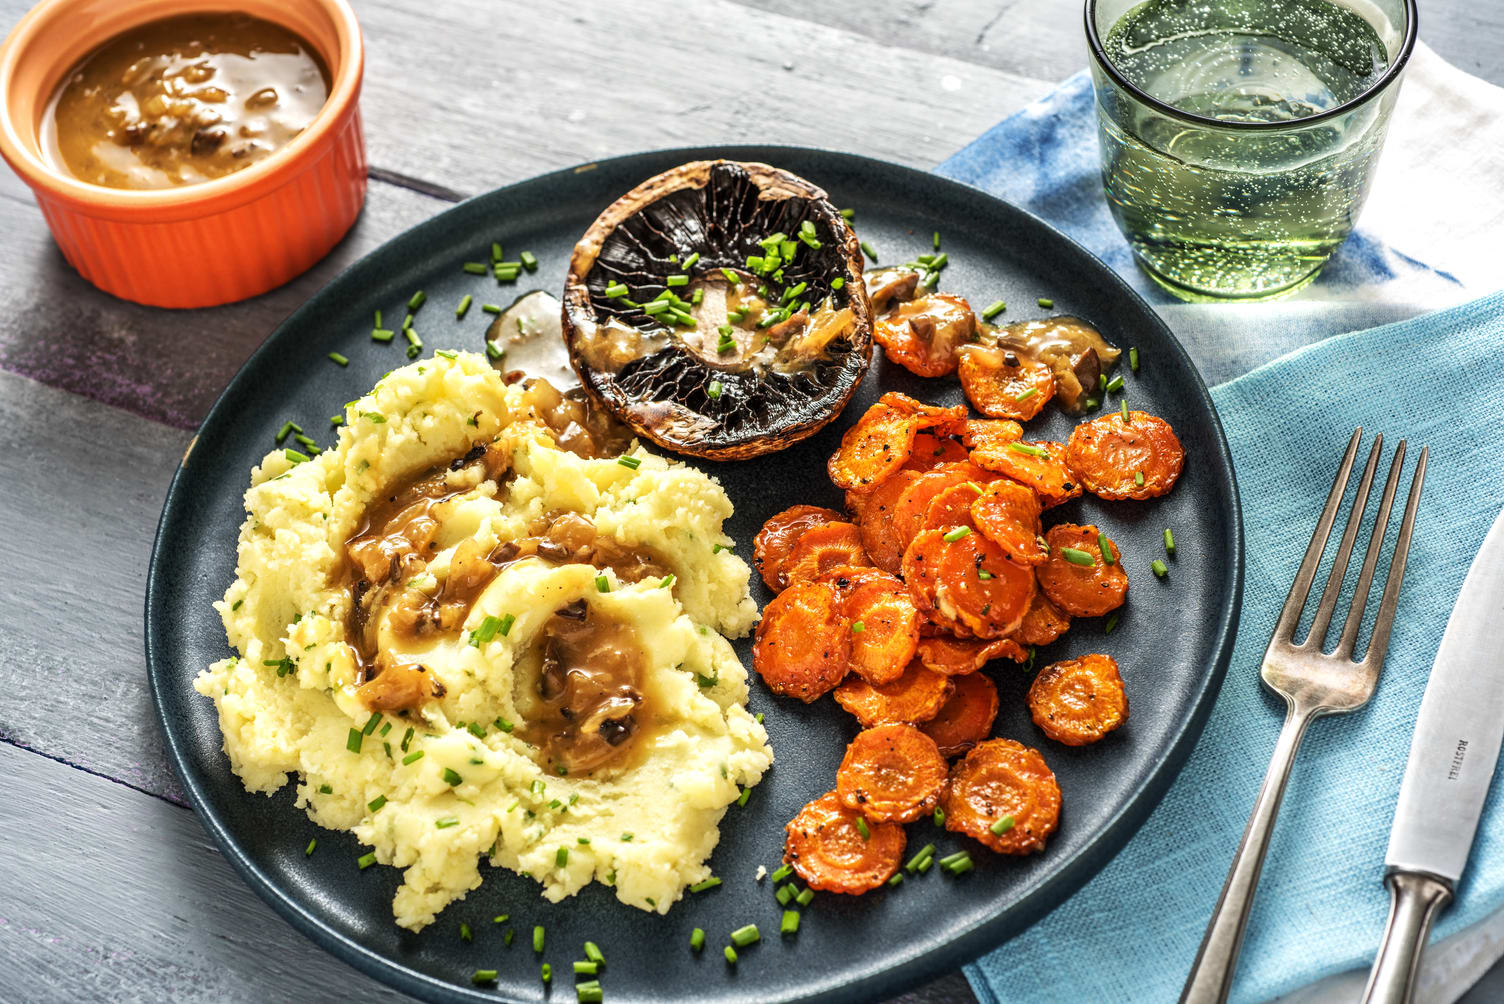 Oven-Baked Portobellos and Chive Mashed Potatoes